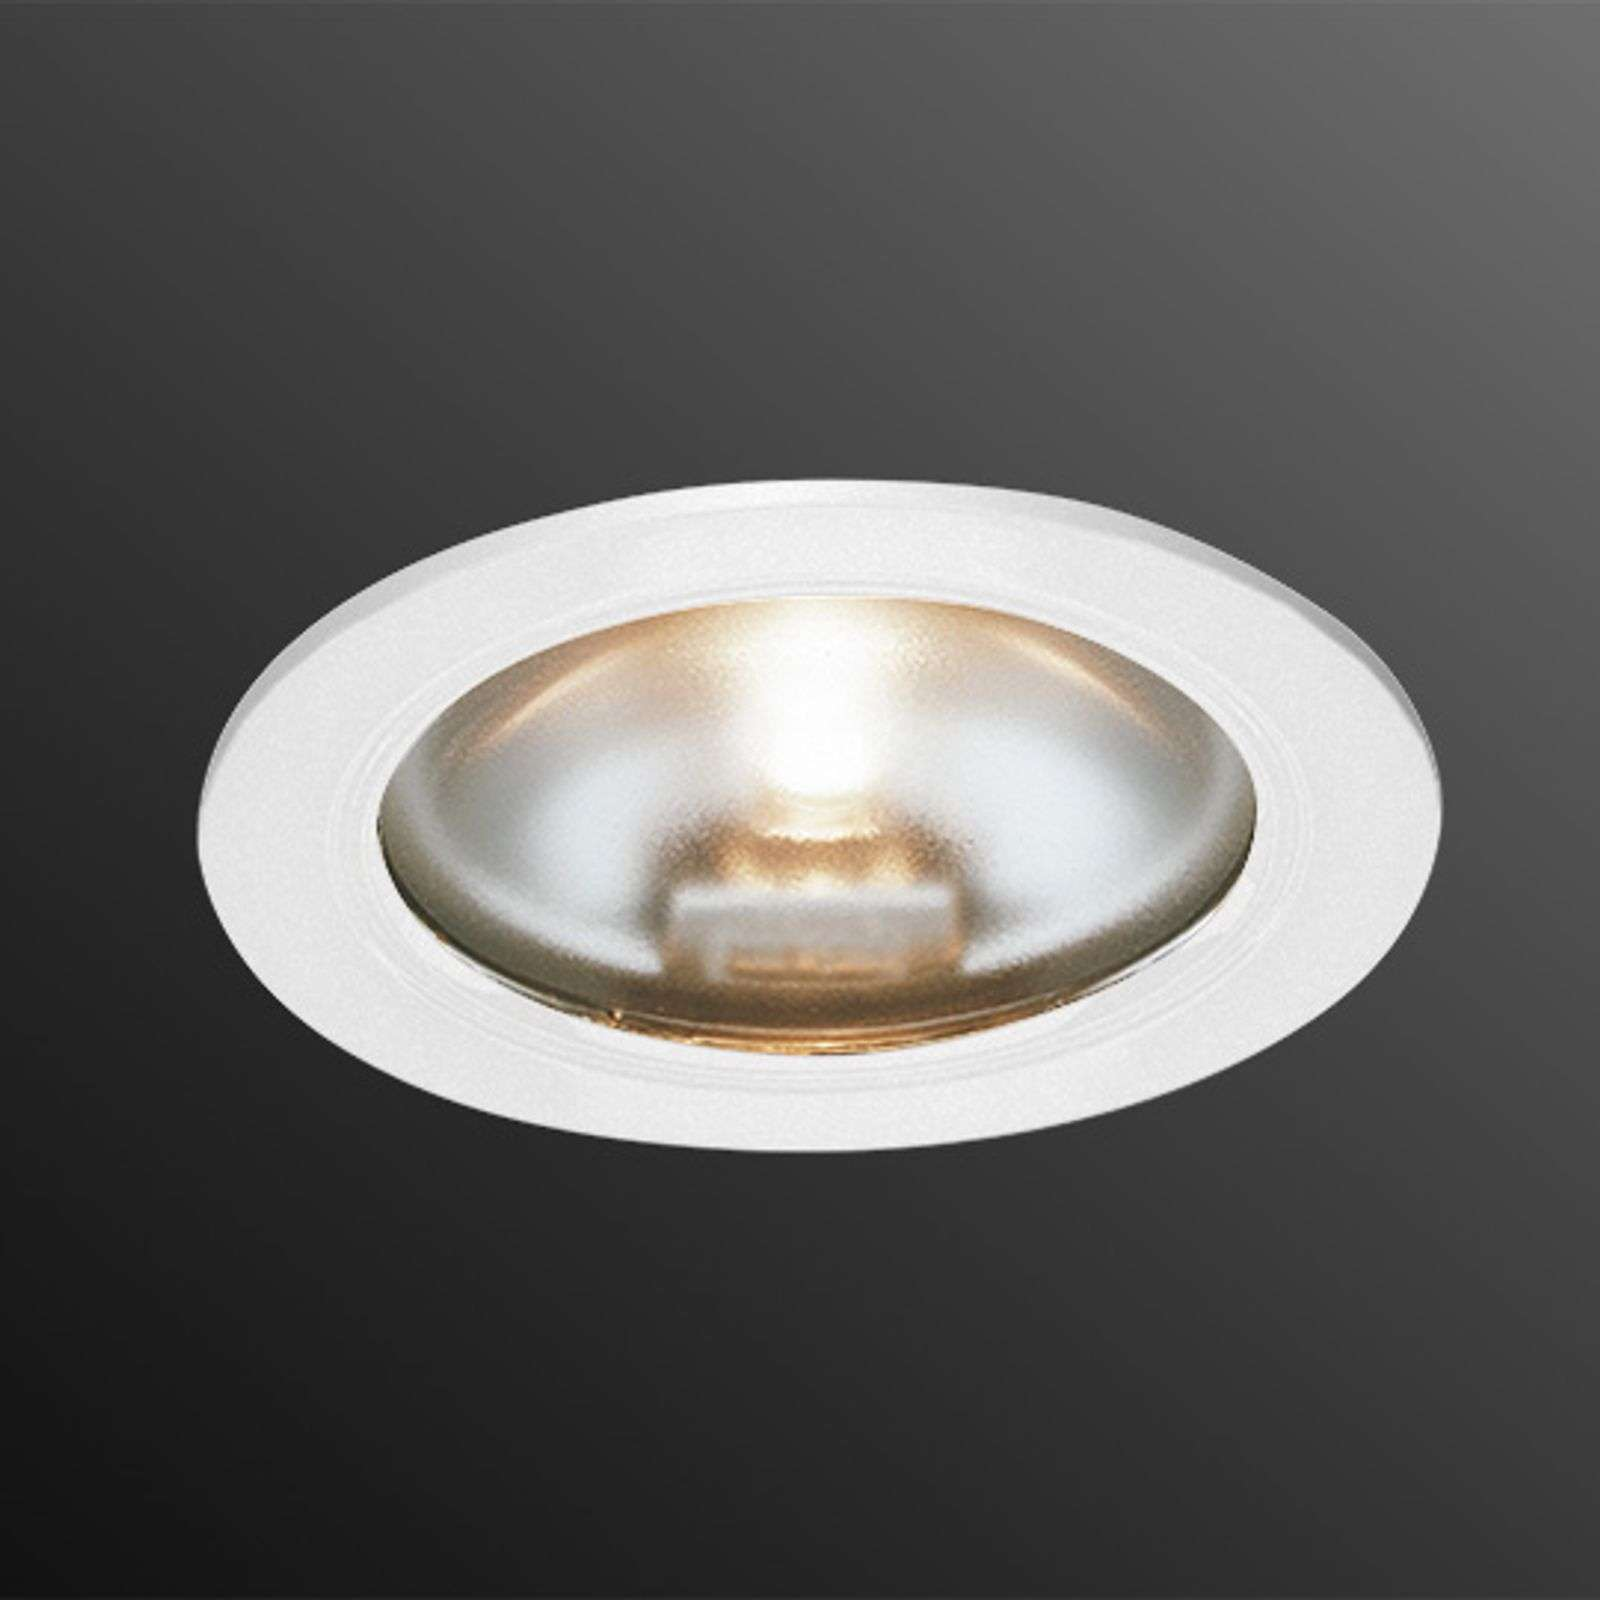 KB 12 halogen recessed light, white